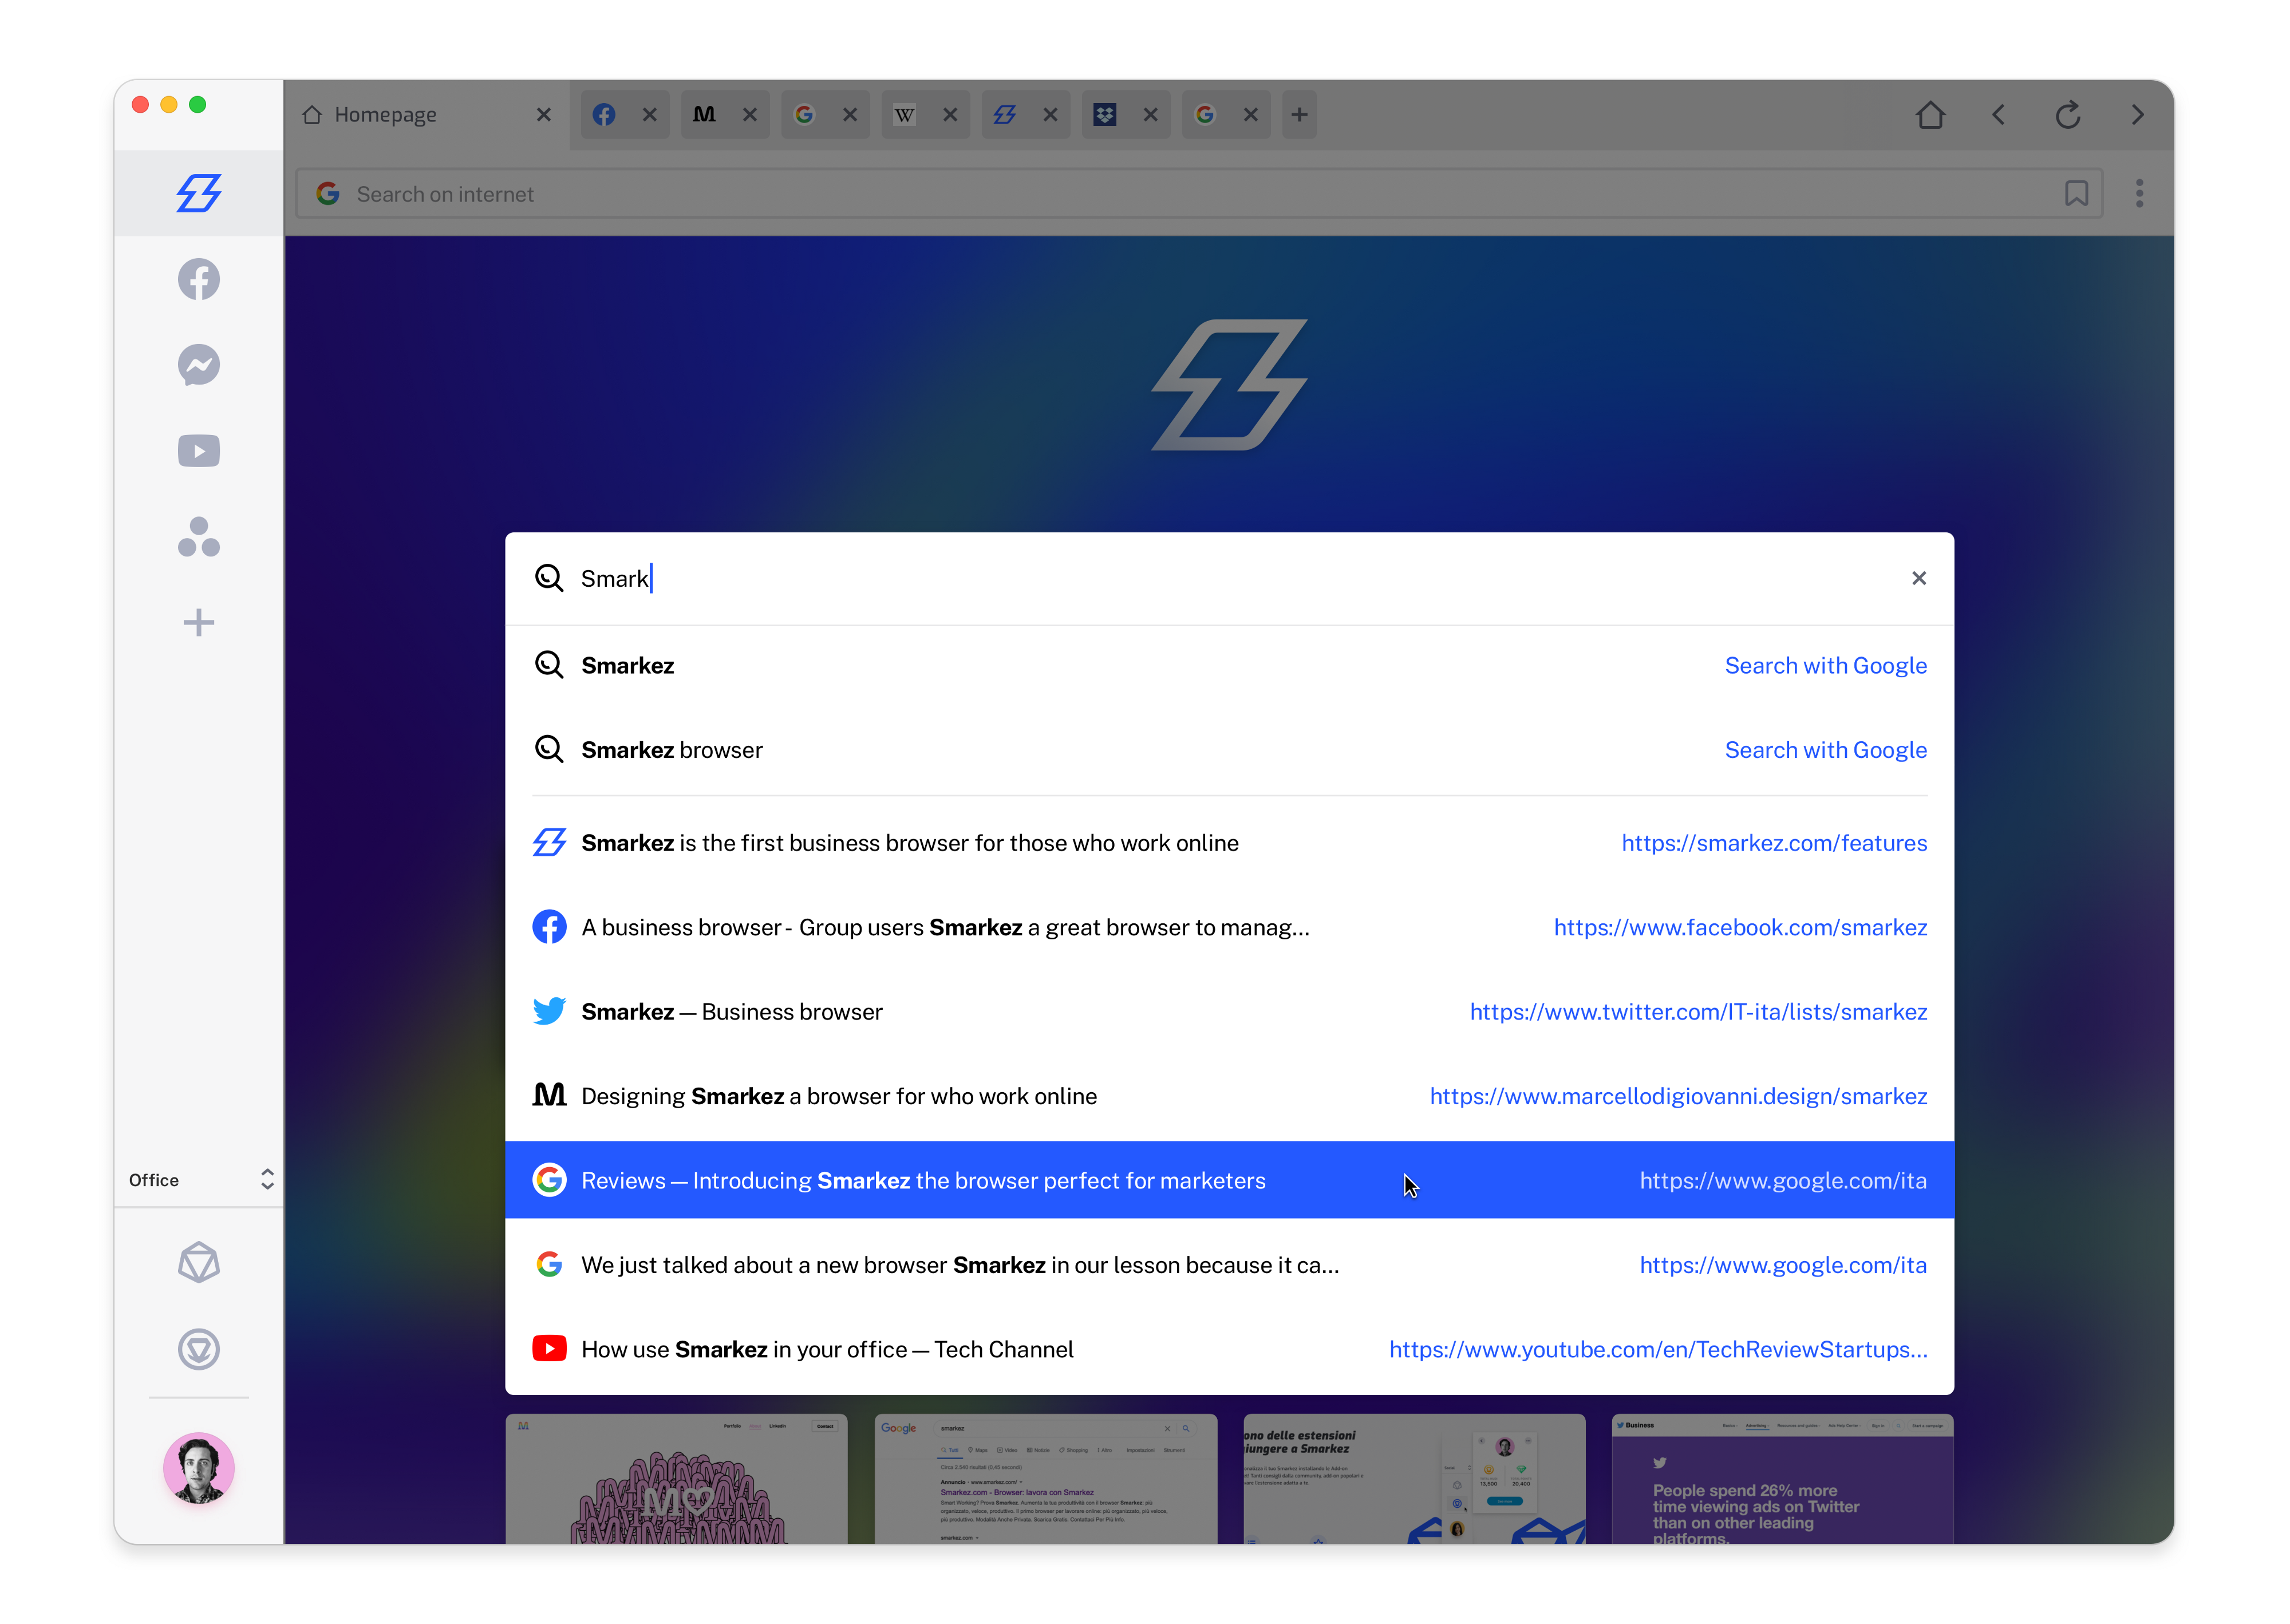 Smarkez design for a browser — Safari 2021 or Chrome are not for who work online